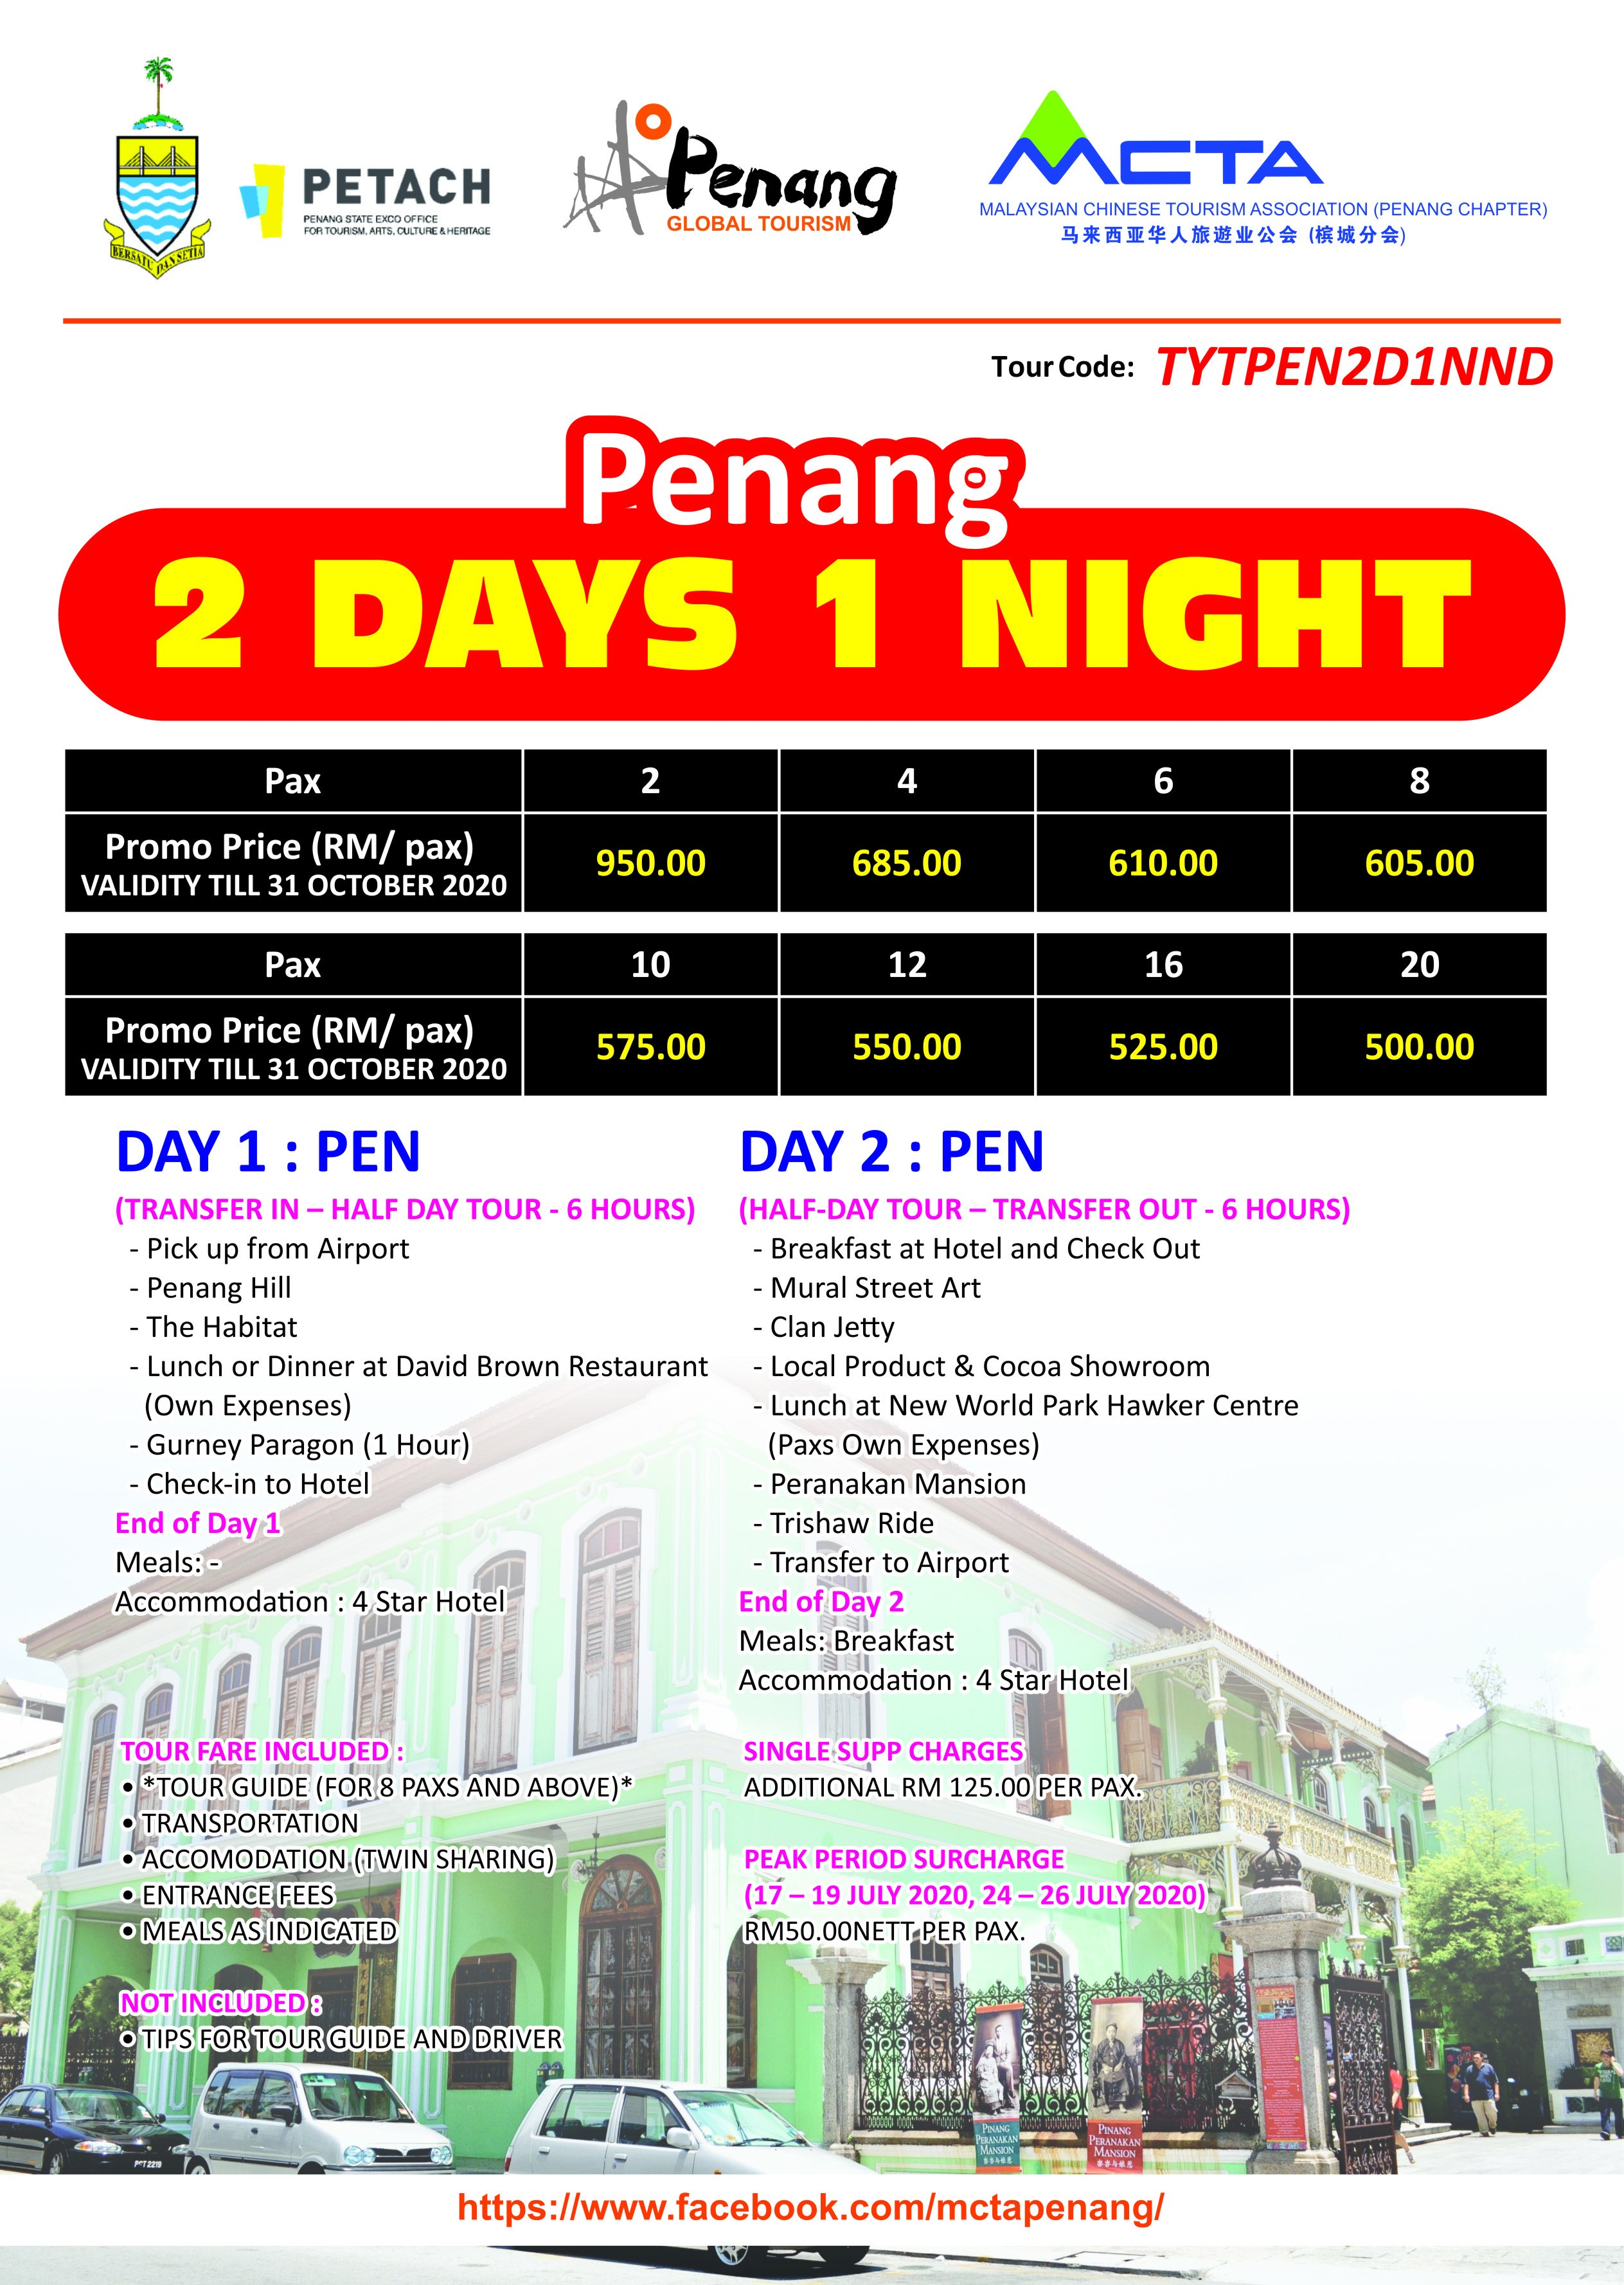 Penang - 2 Days 1 Night